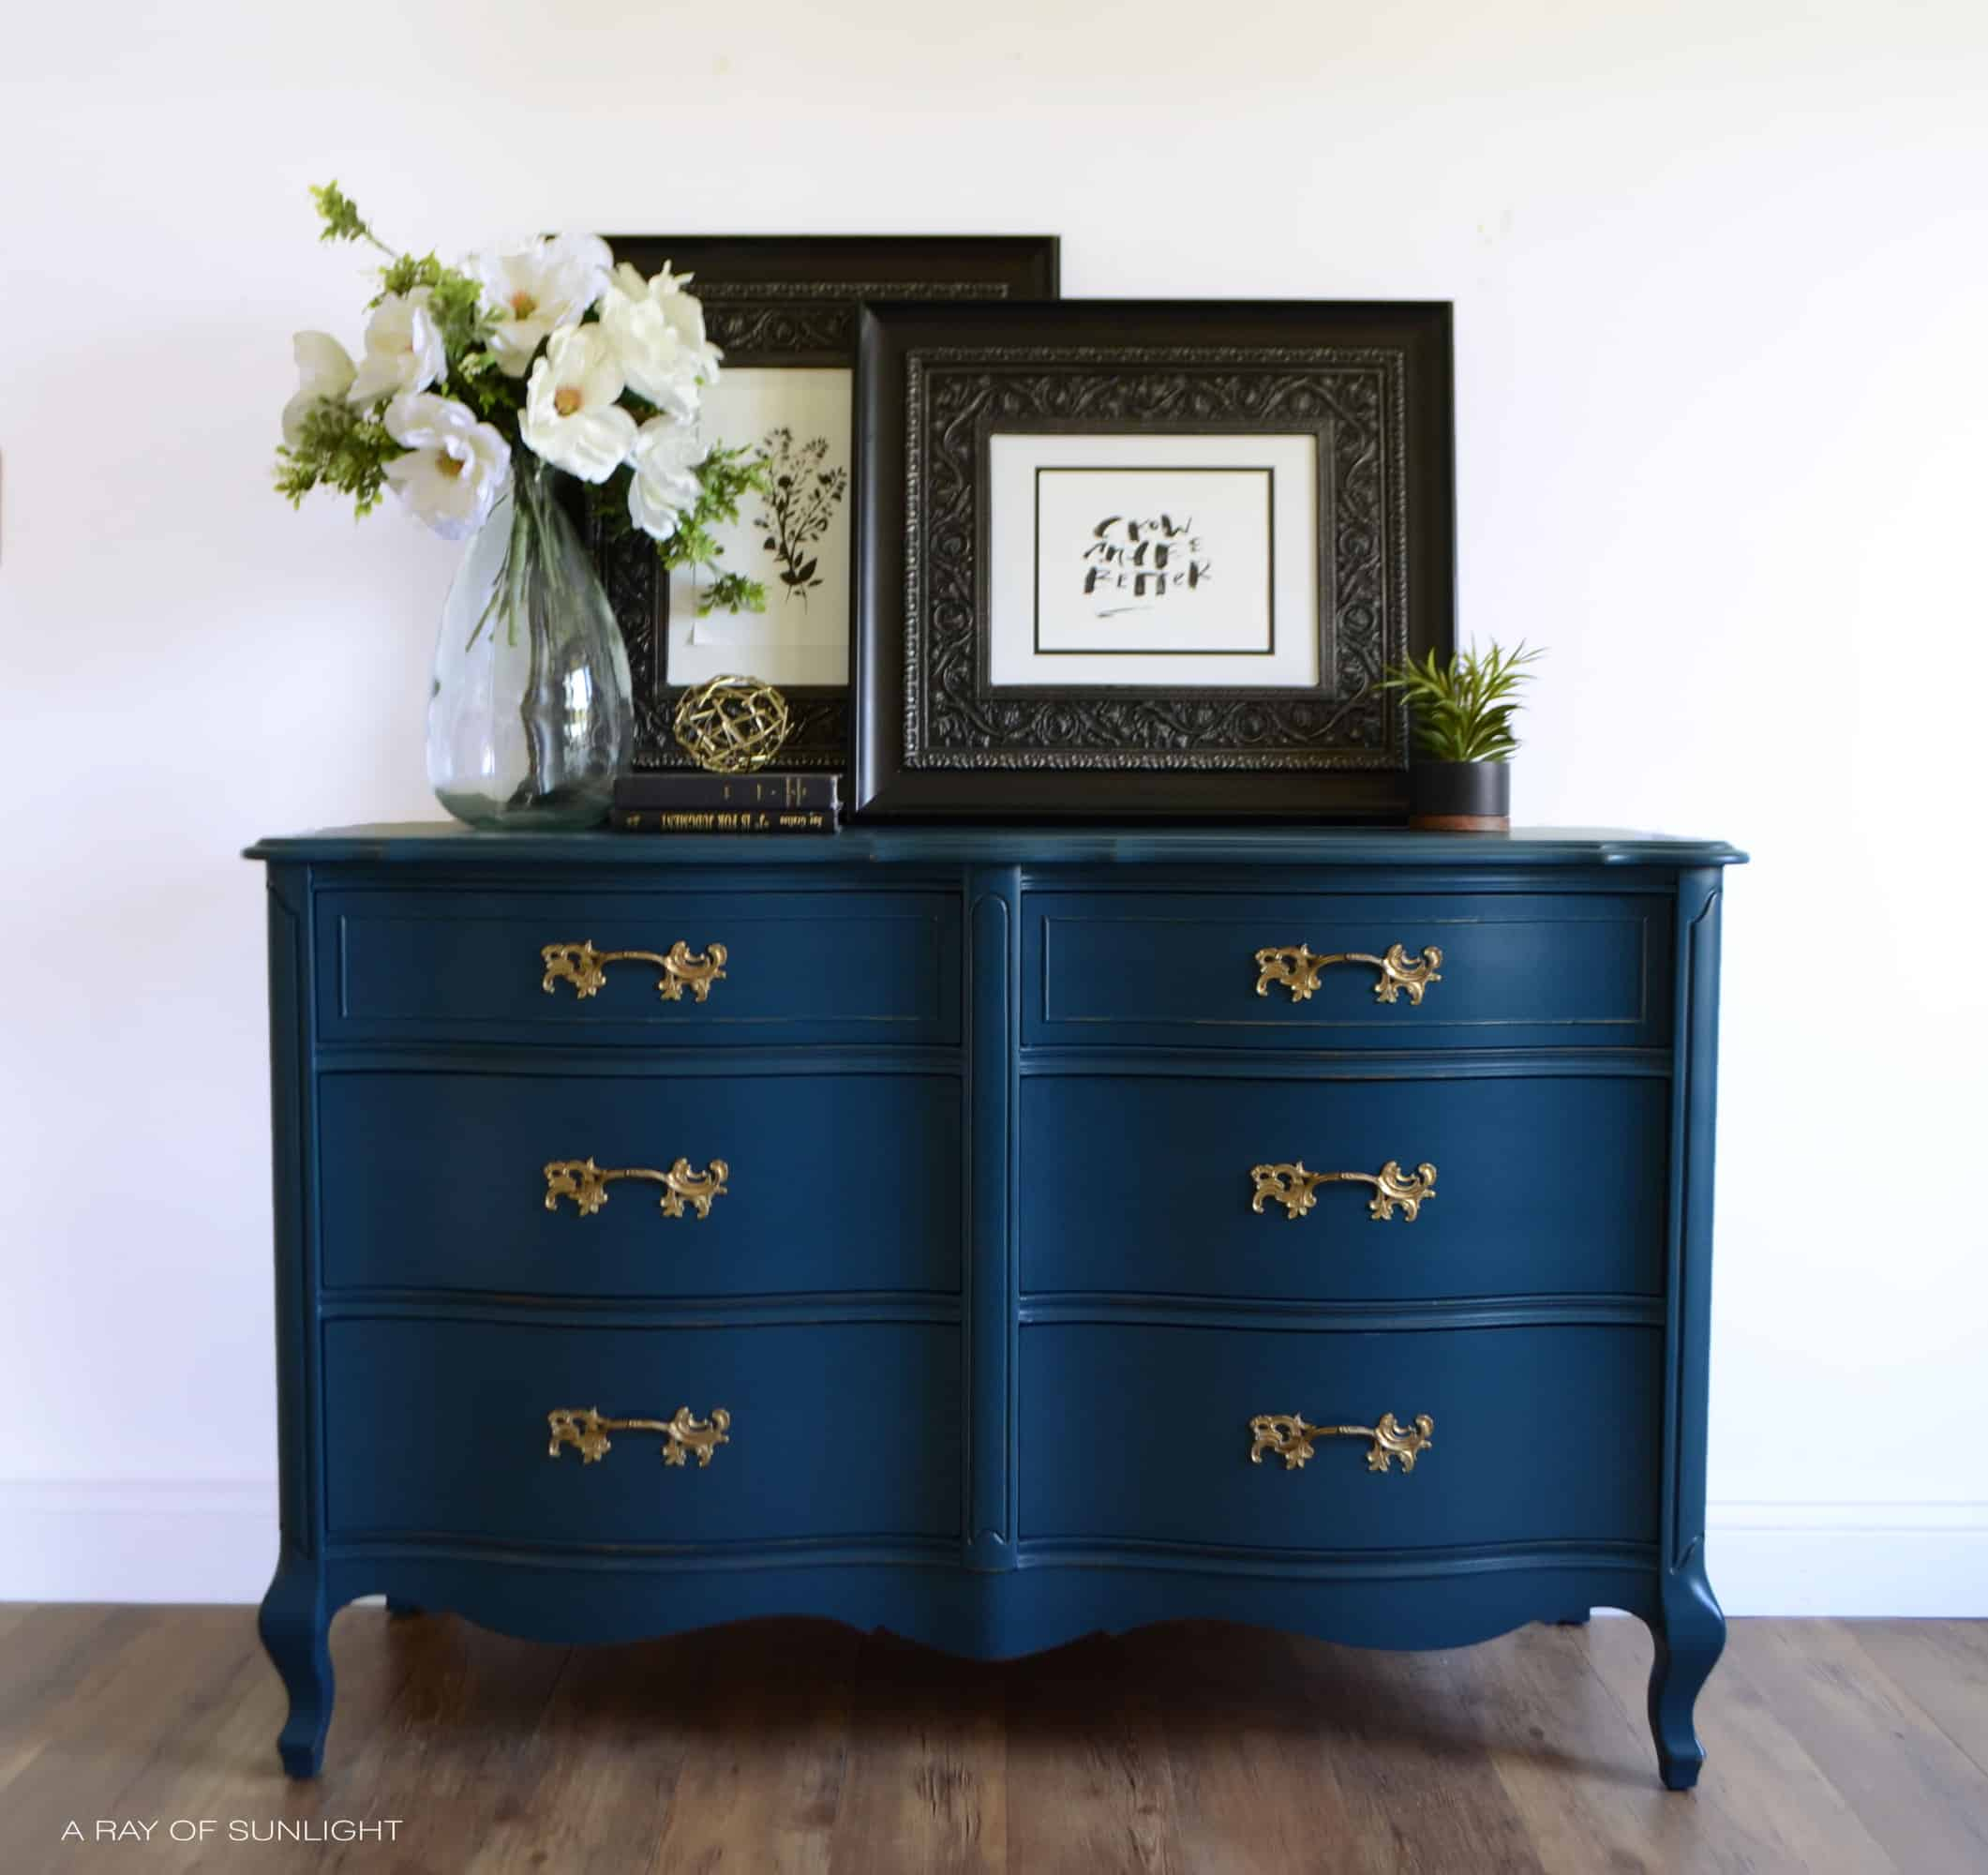 SOLD OUT - Navy and Gold Dresser - A Ray of Sunlight